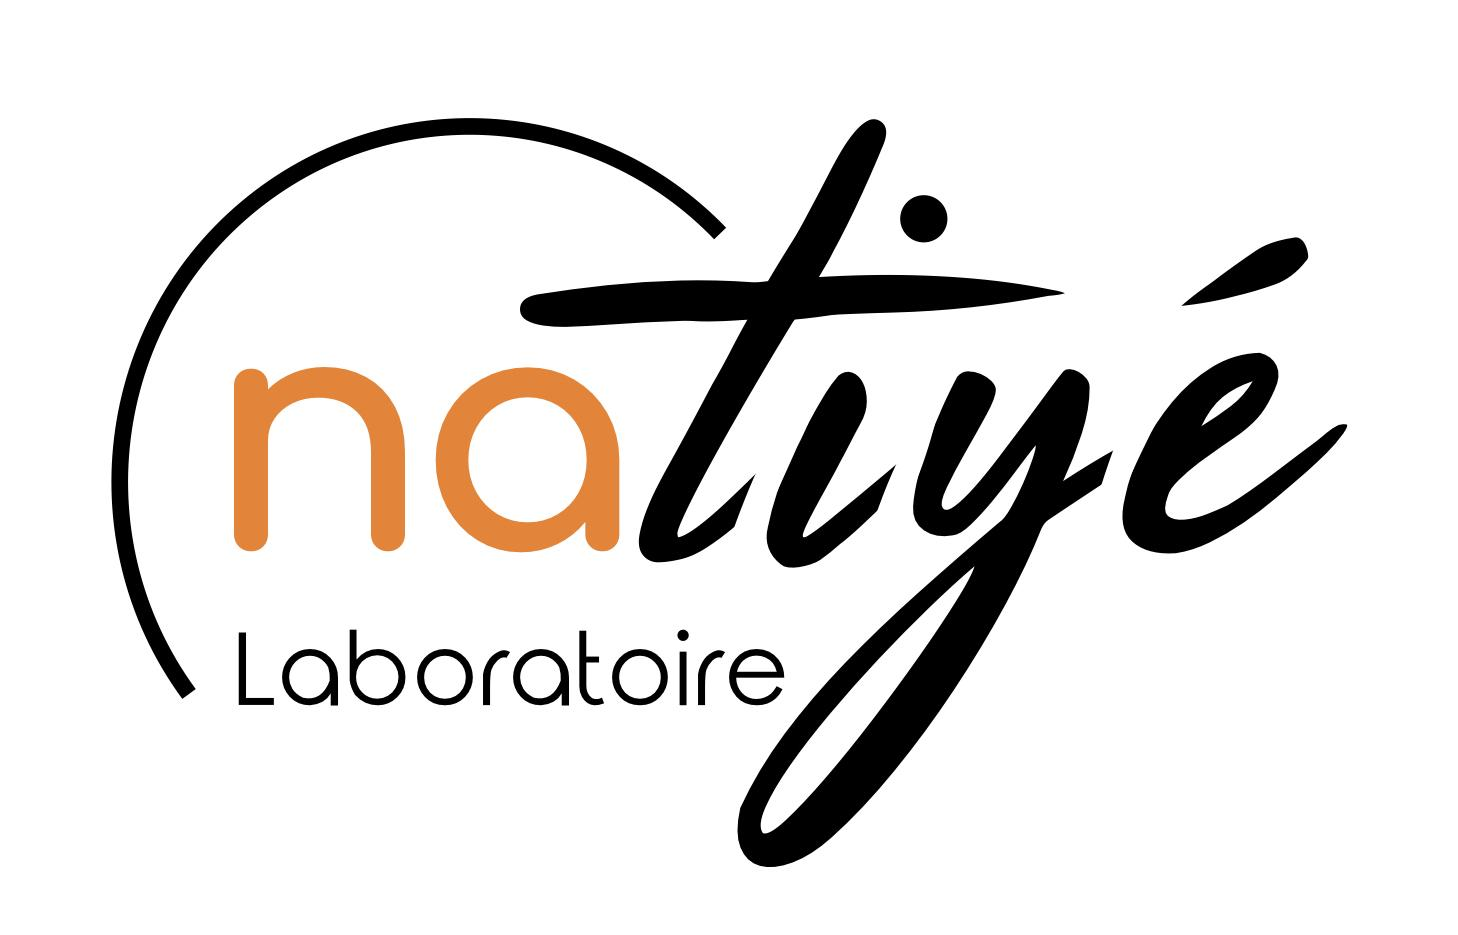 laboratoire-natiye-agnes-crochemar-galou-pharmacienne-volleyeuse-fondatrice-logo-origine